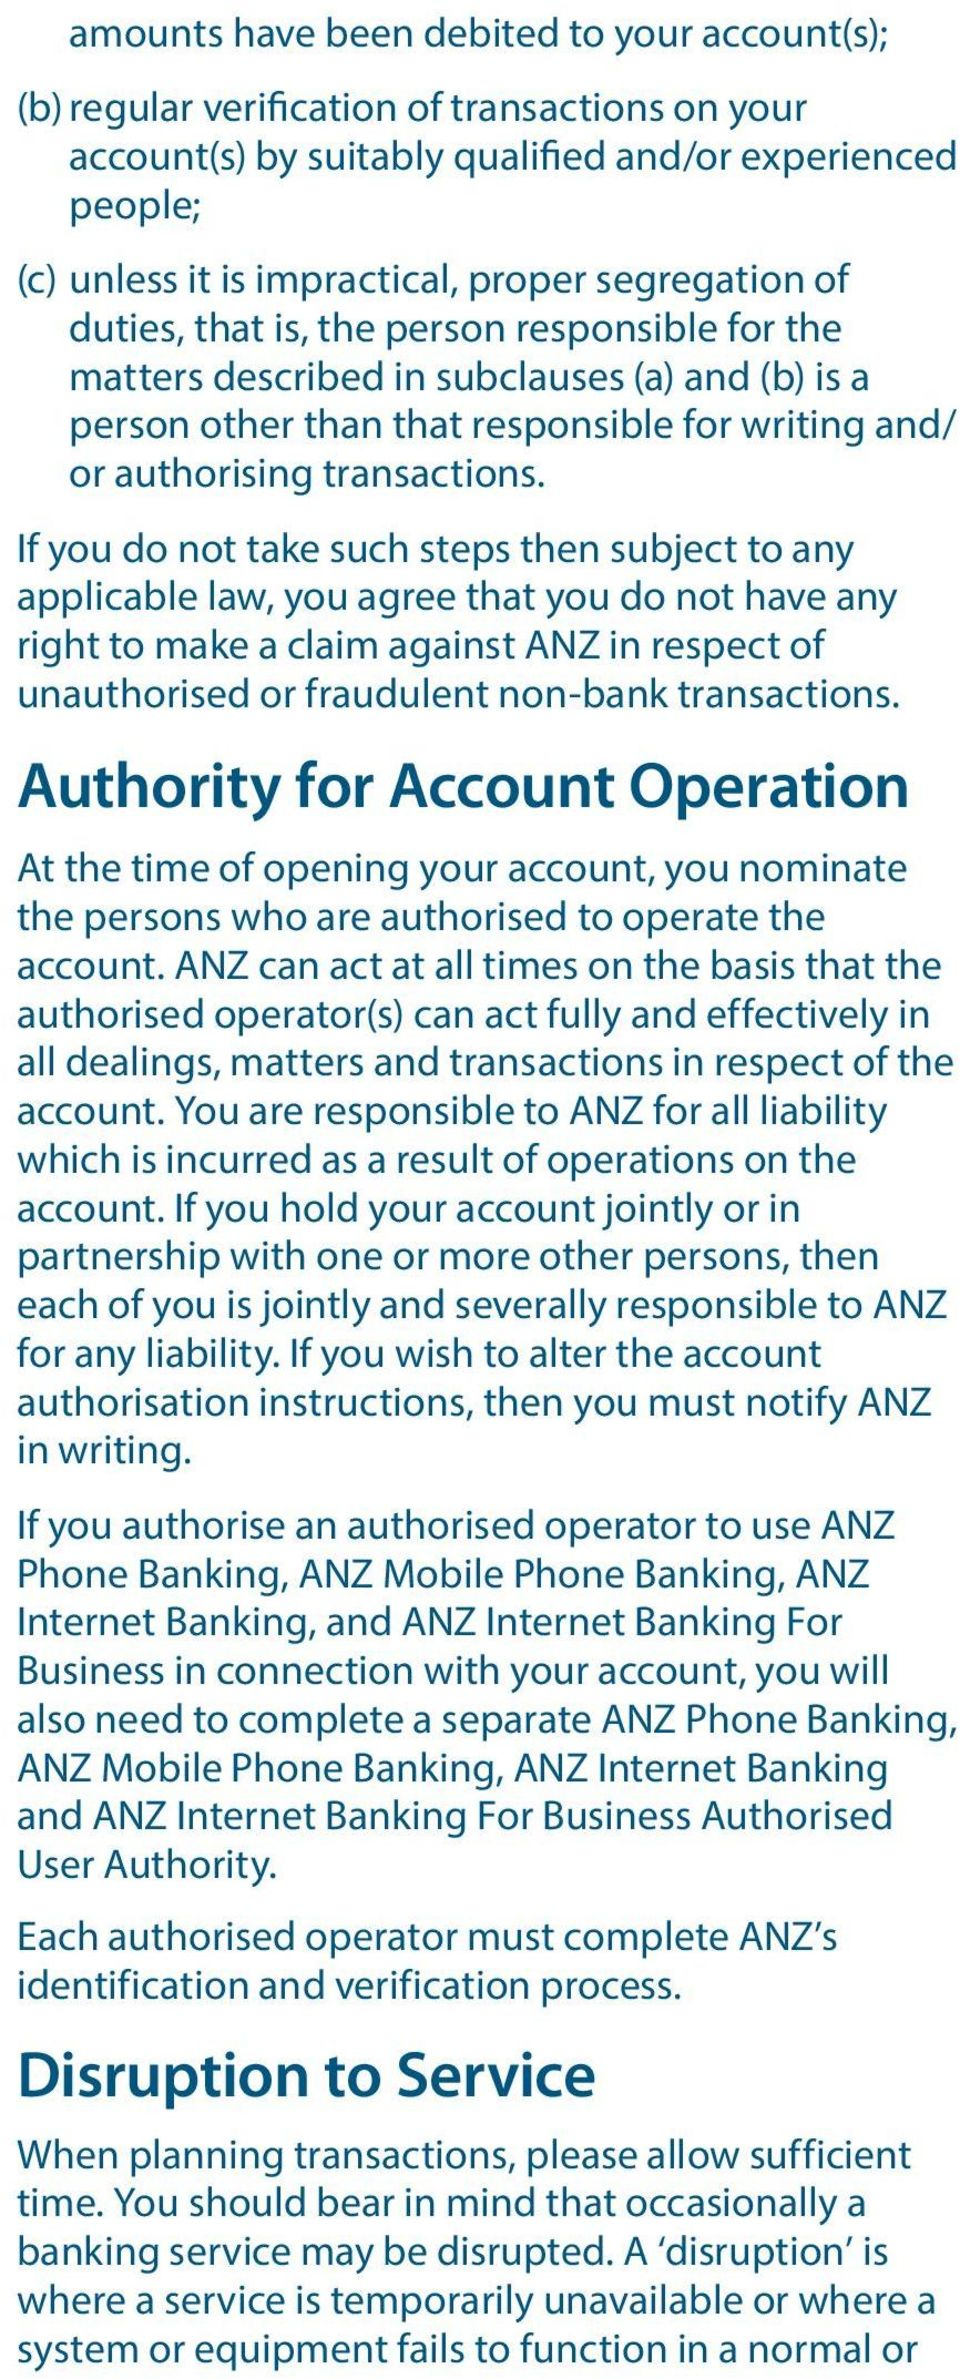 If you do not take such steps then subject to any applicable law, you agree that you do not have any right to make a claim against ANZ in respect of unauthorised or fraudulent non-bank transactions.